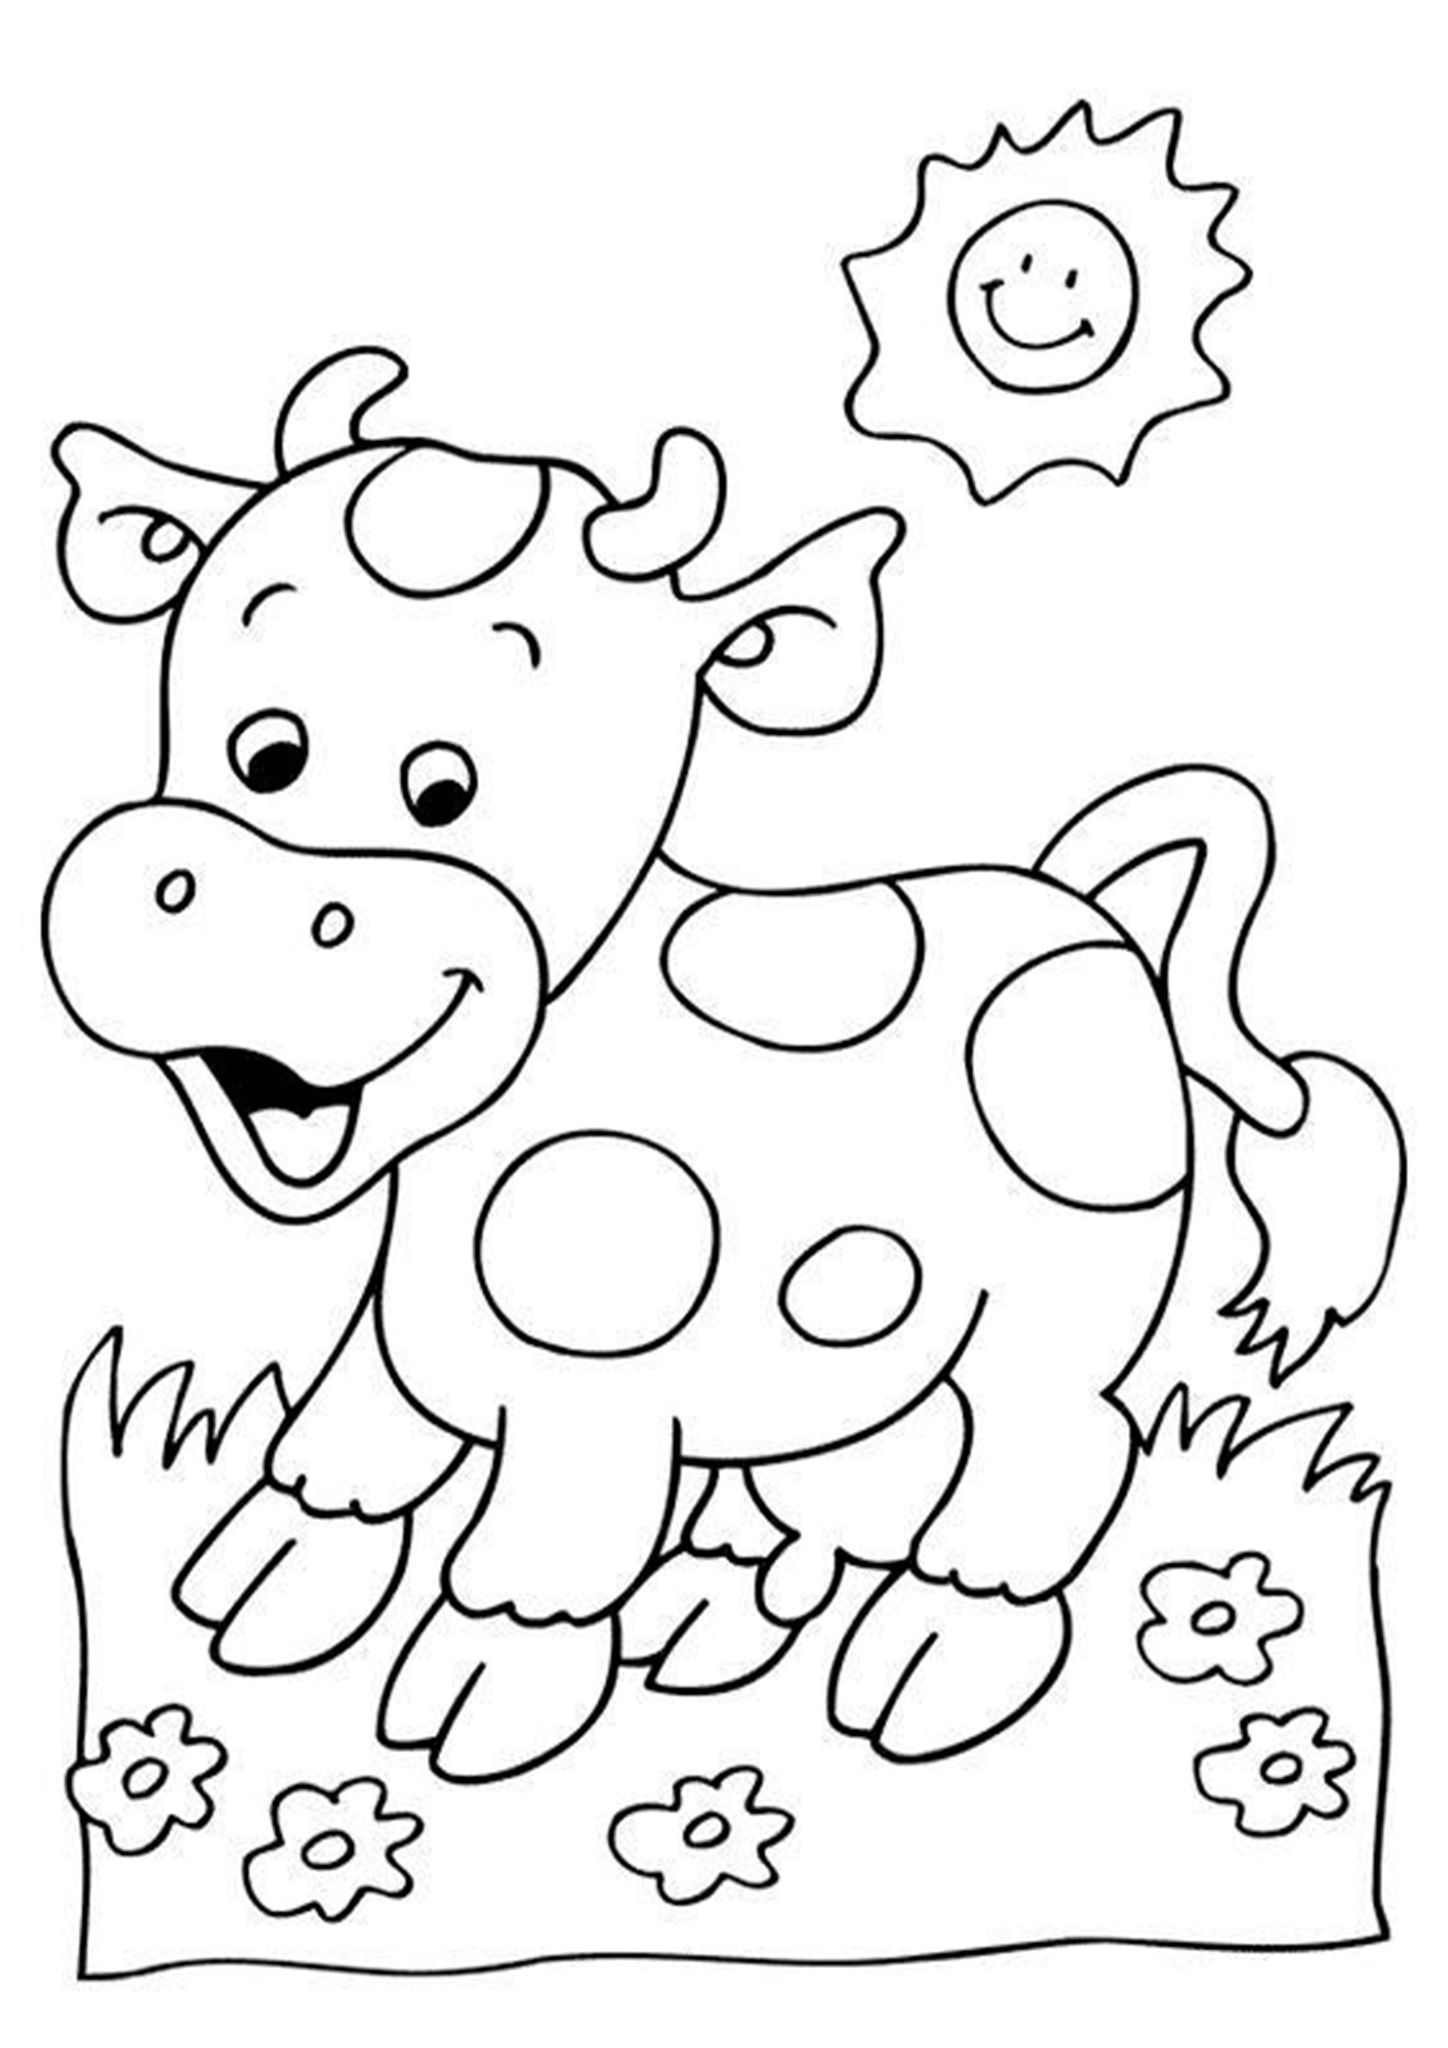 Free & Easy To Print Cow Coloring Pages in 2020 Cow